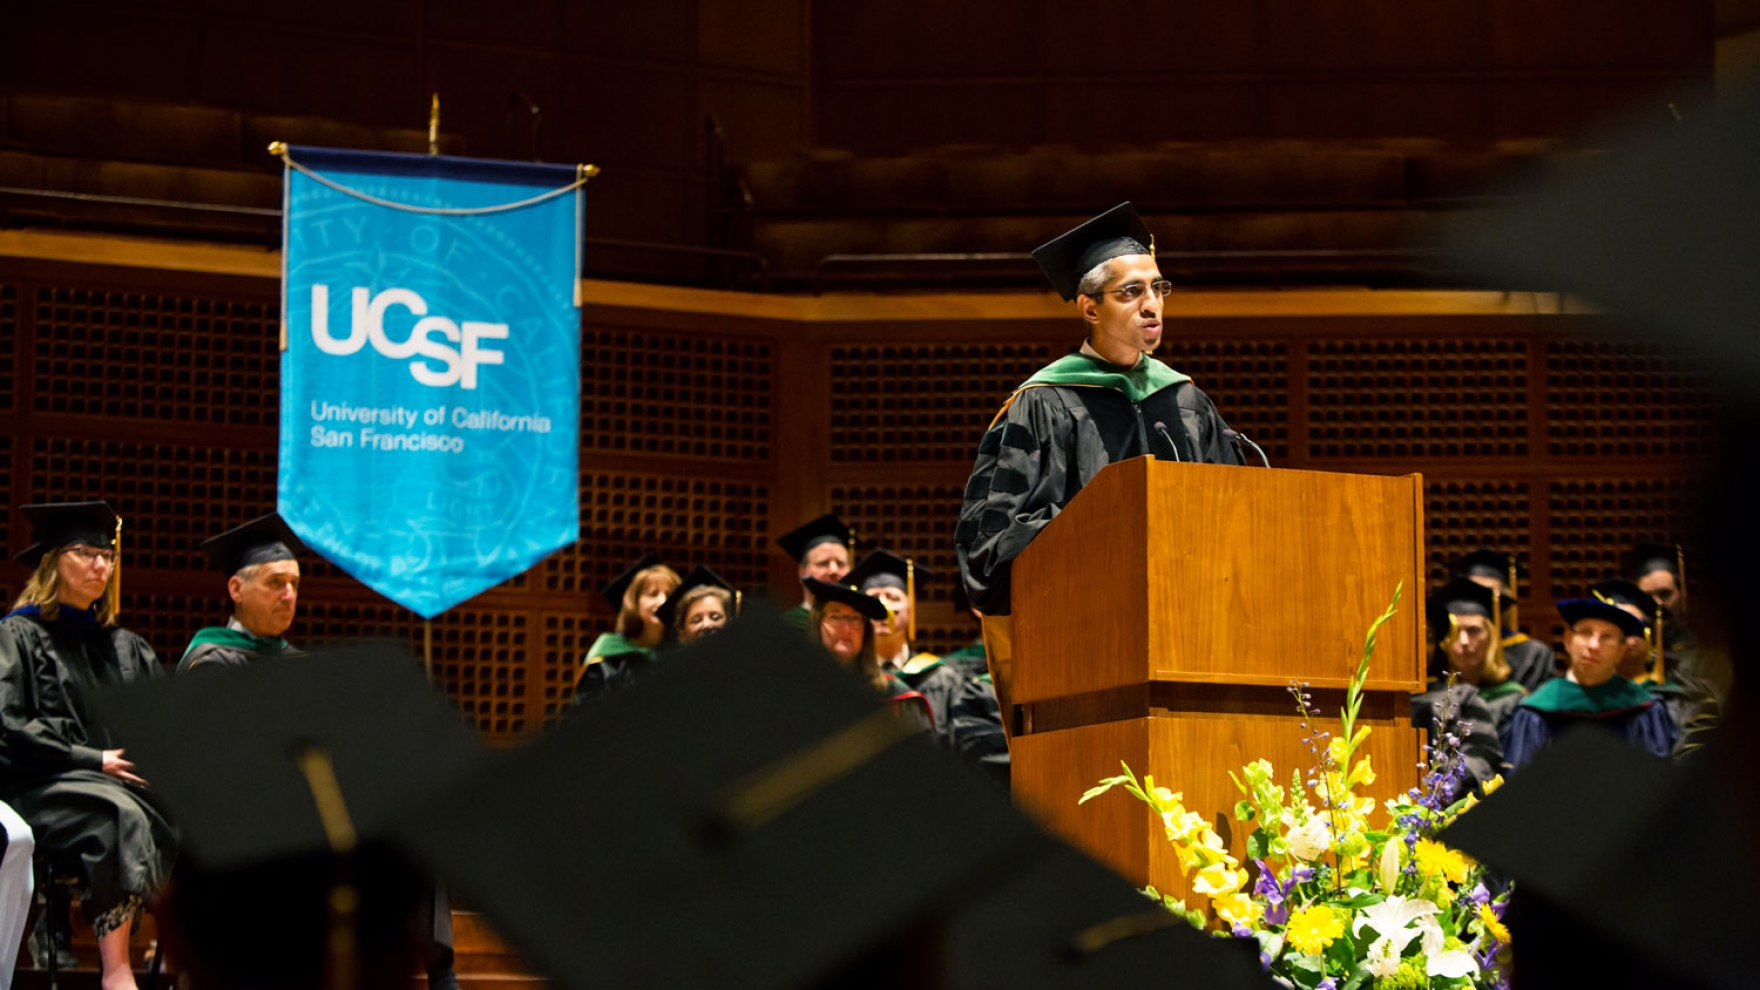 Vivek Murthy speaks on stage at the UCSF School of Medicine Commencement ceremony